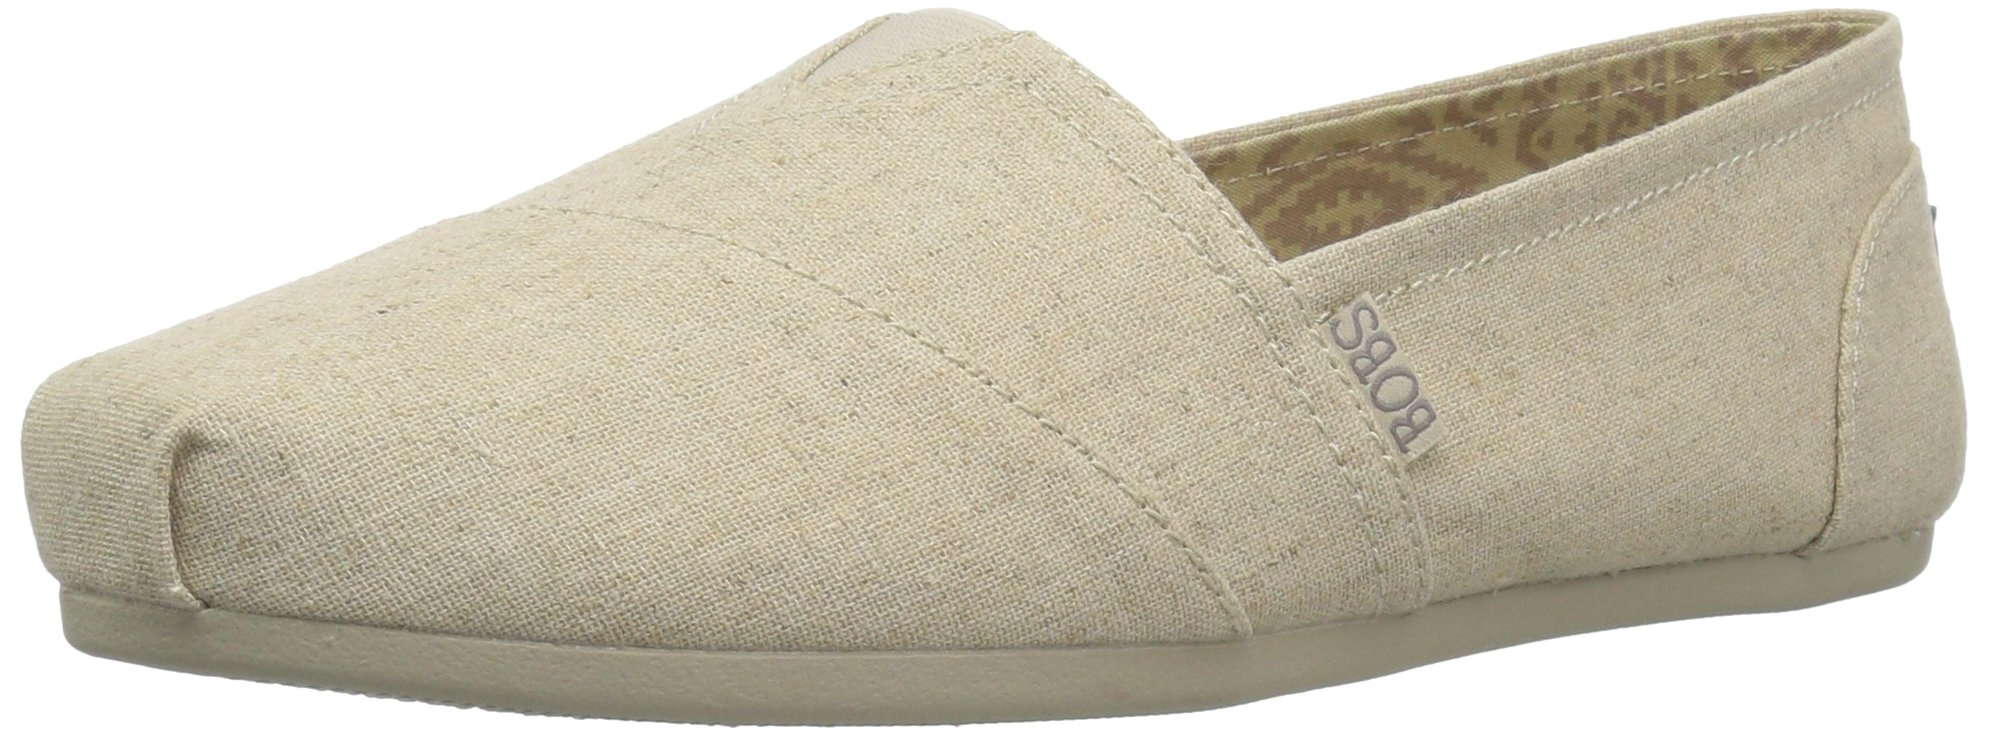 Skechers BOBS from Women's Plush-Best Wishes Ballet Flat, Natural, 7 W US